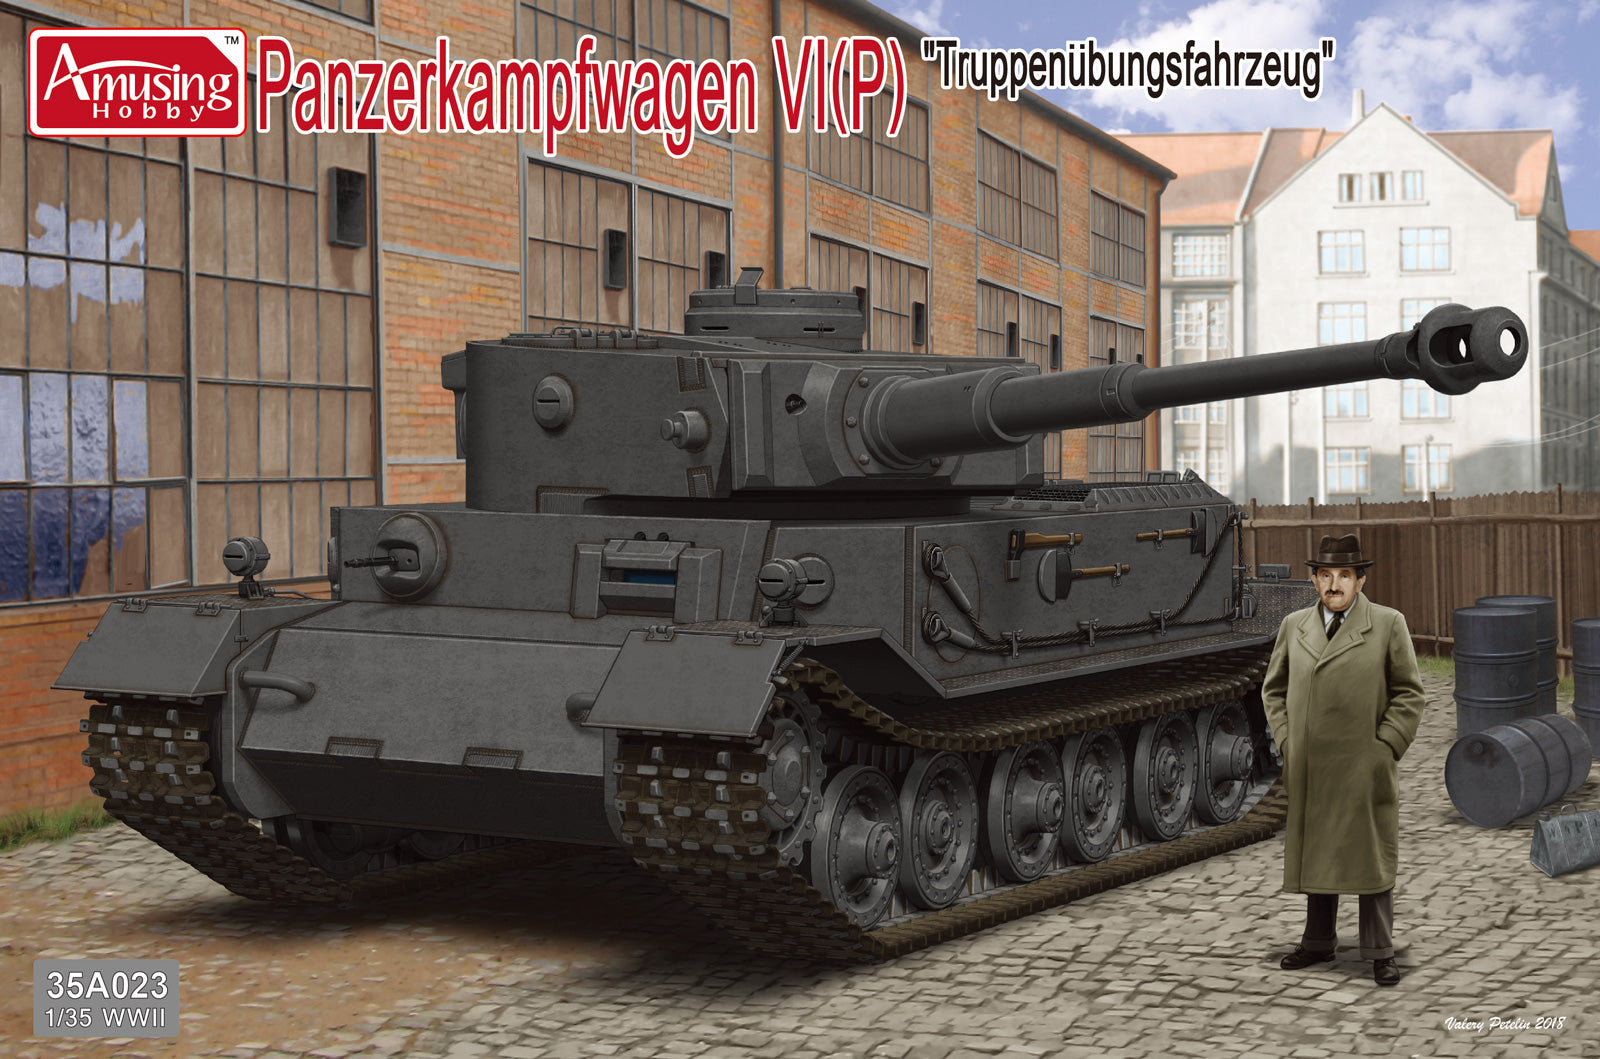 Amusing Hobby 1/35 Pz.Kpfw.VI Tiger(P) with Resin Figure of Ferdinand Porsche #35A023